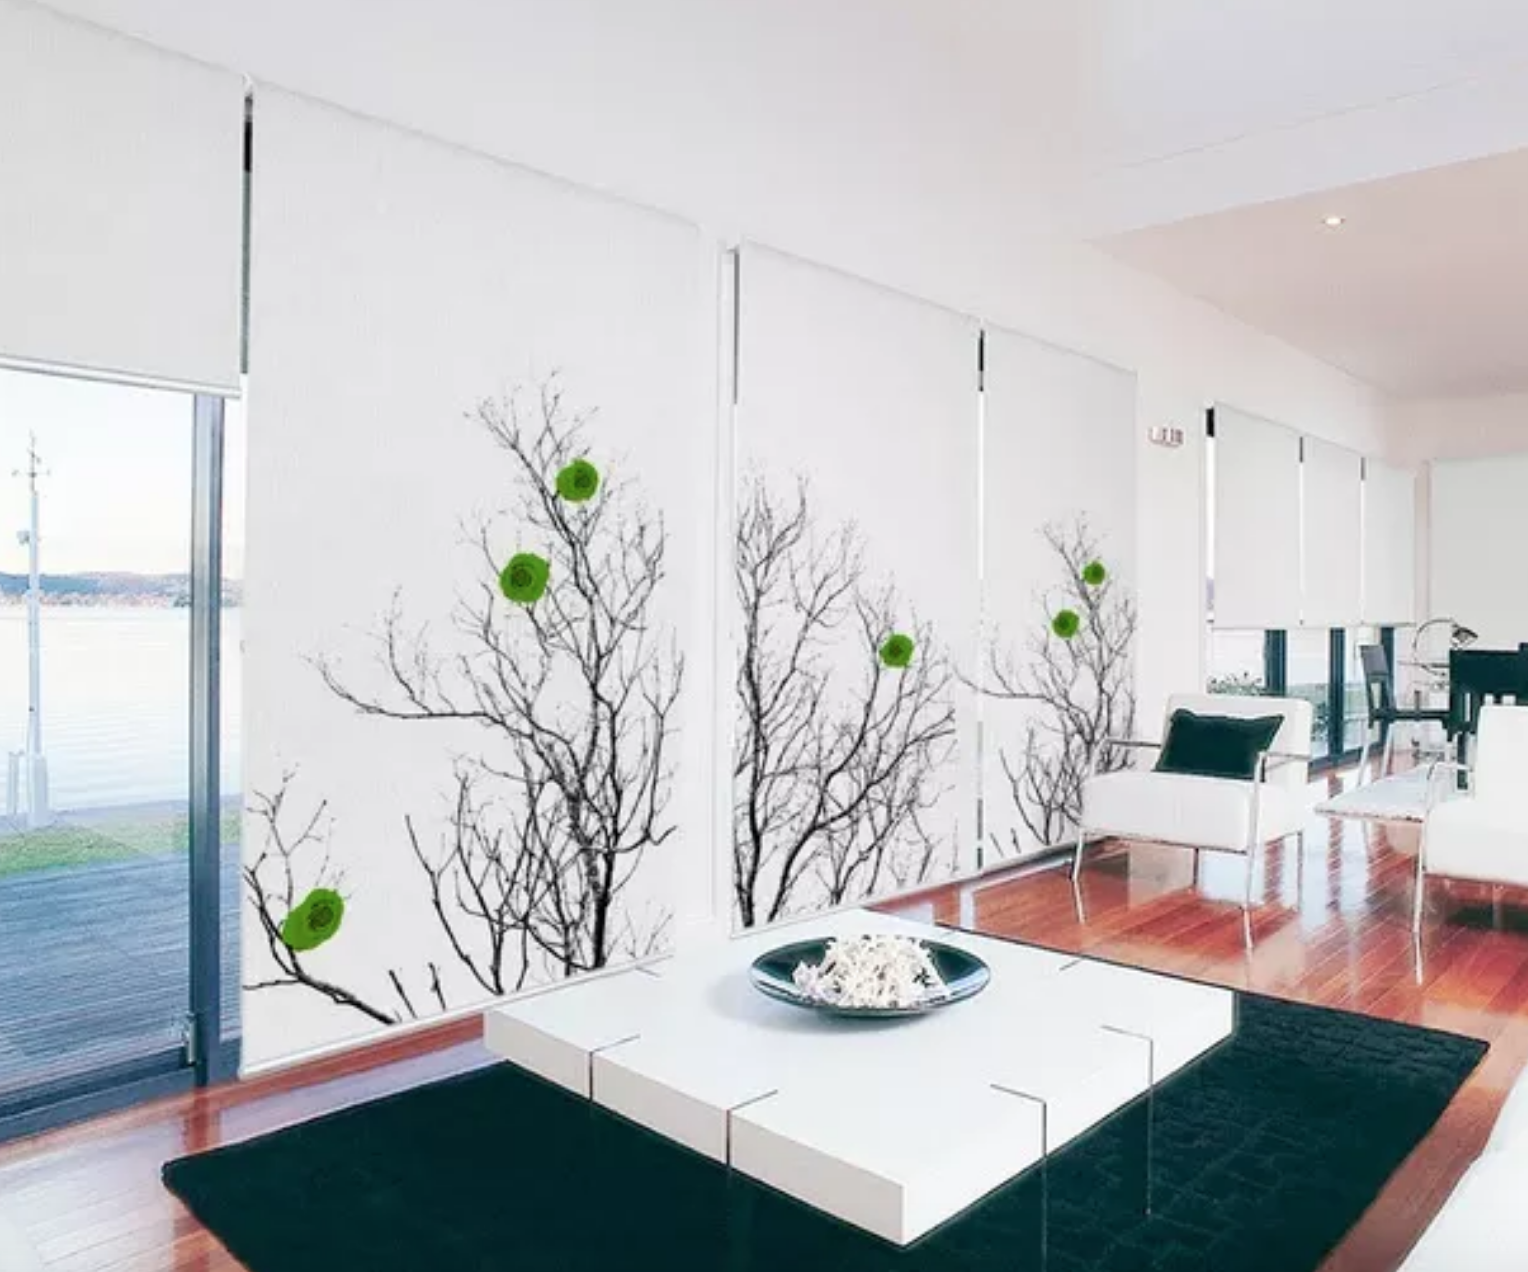 Photography, wall treatment, art, handmade, atlanta photographer, modern minimalist window treatment with trees and green leaves, eco-art window treatments e=